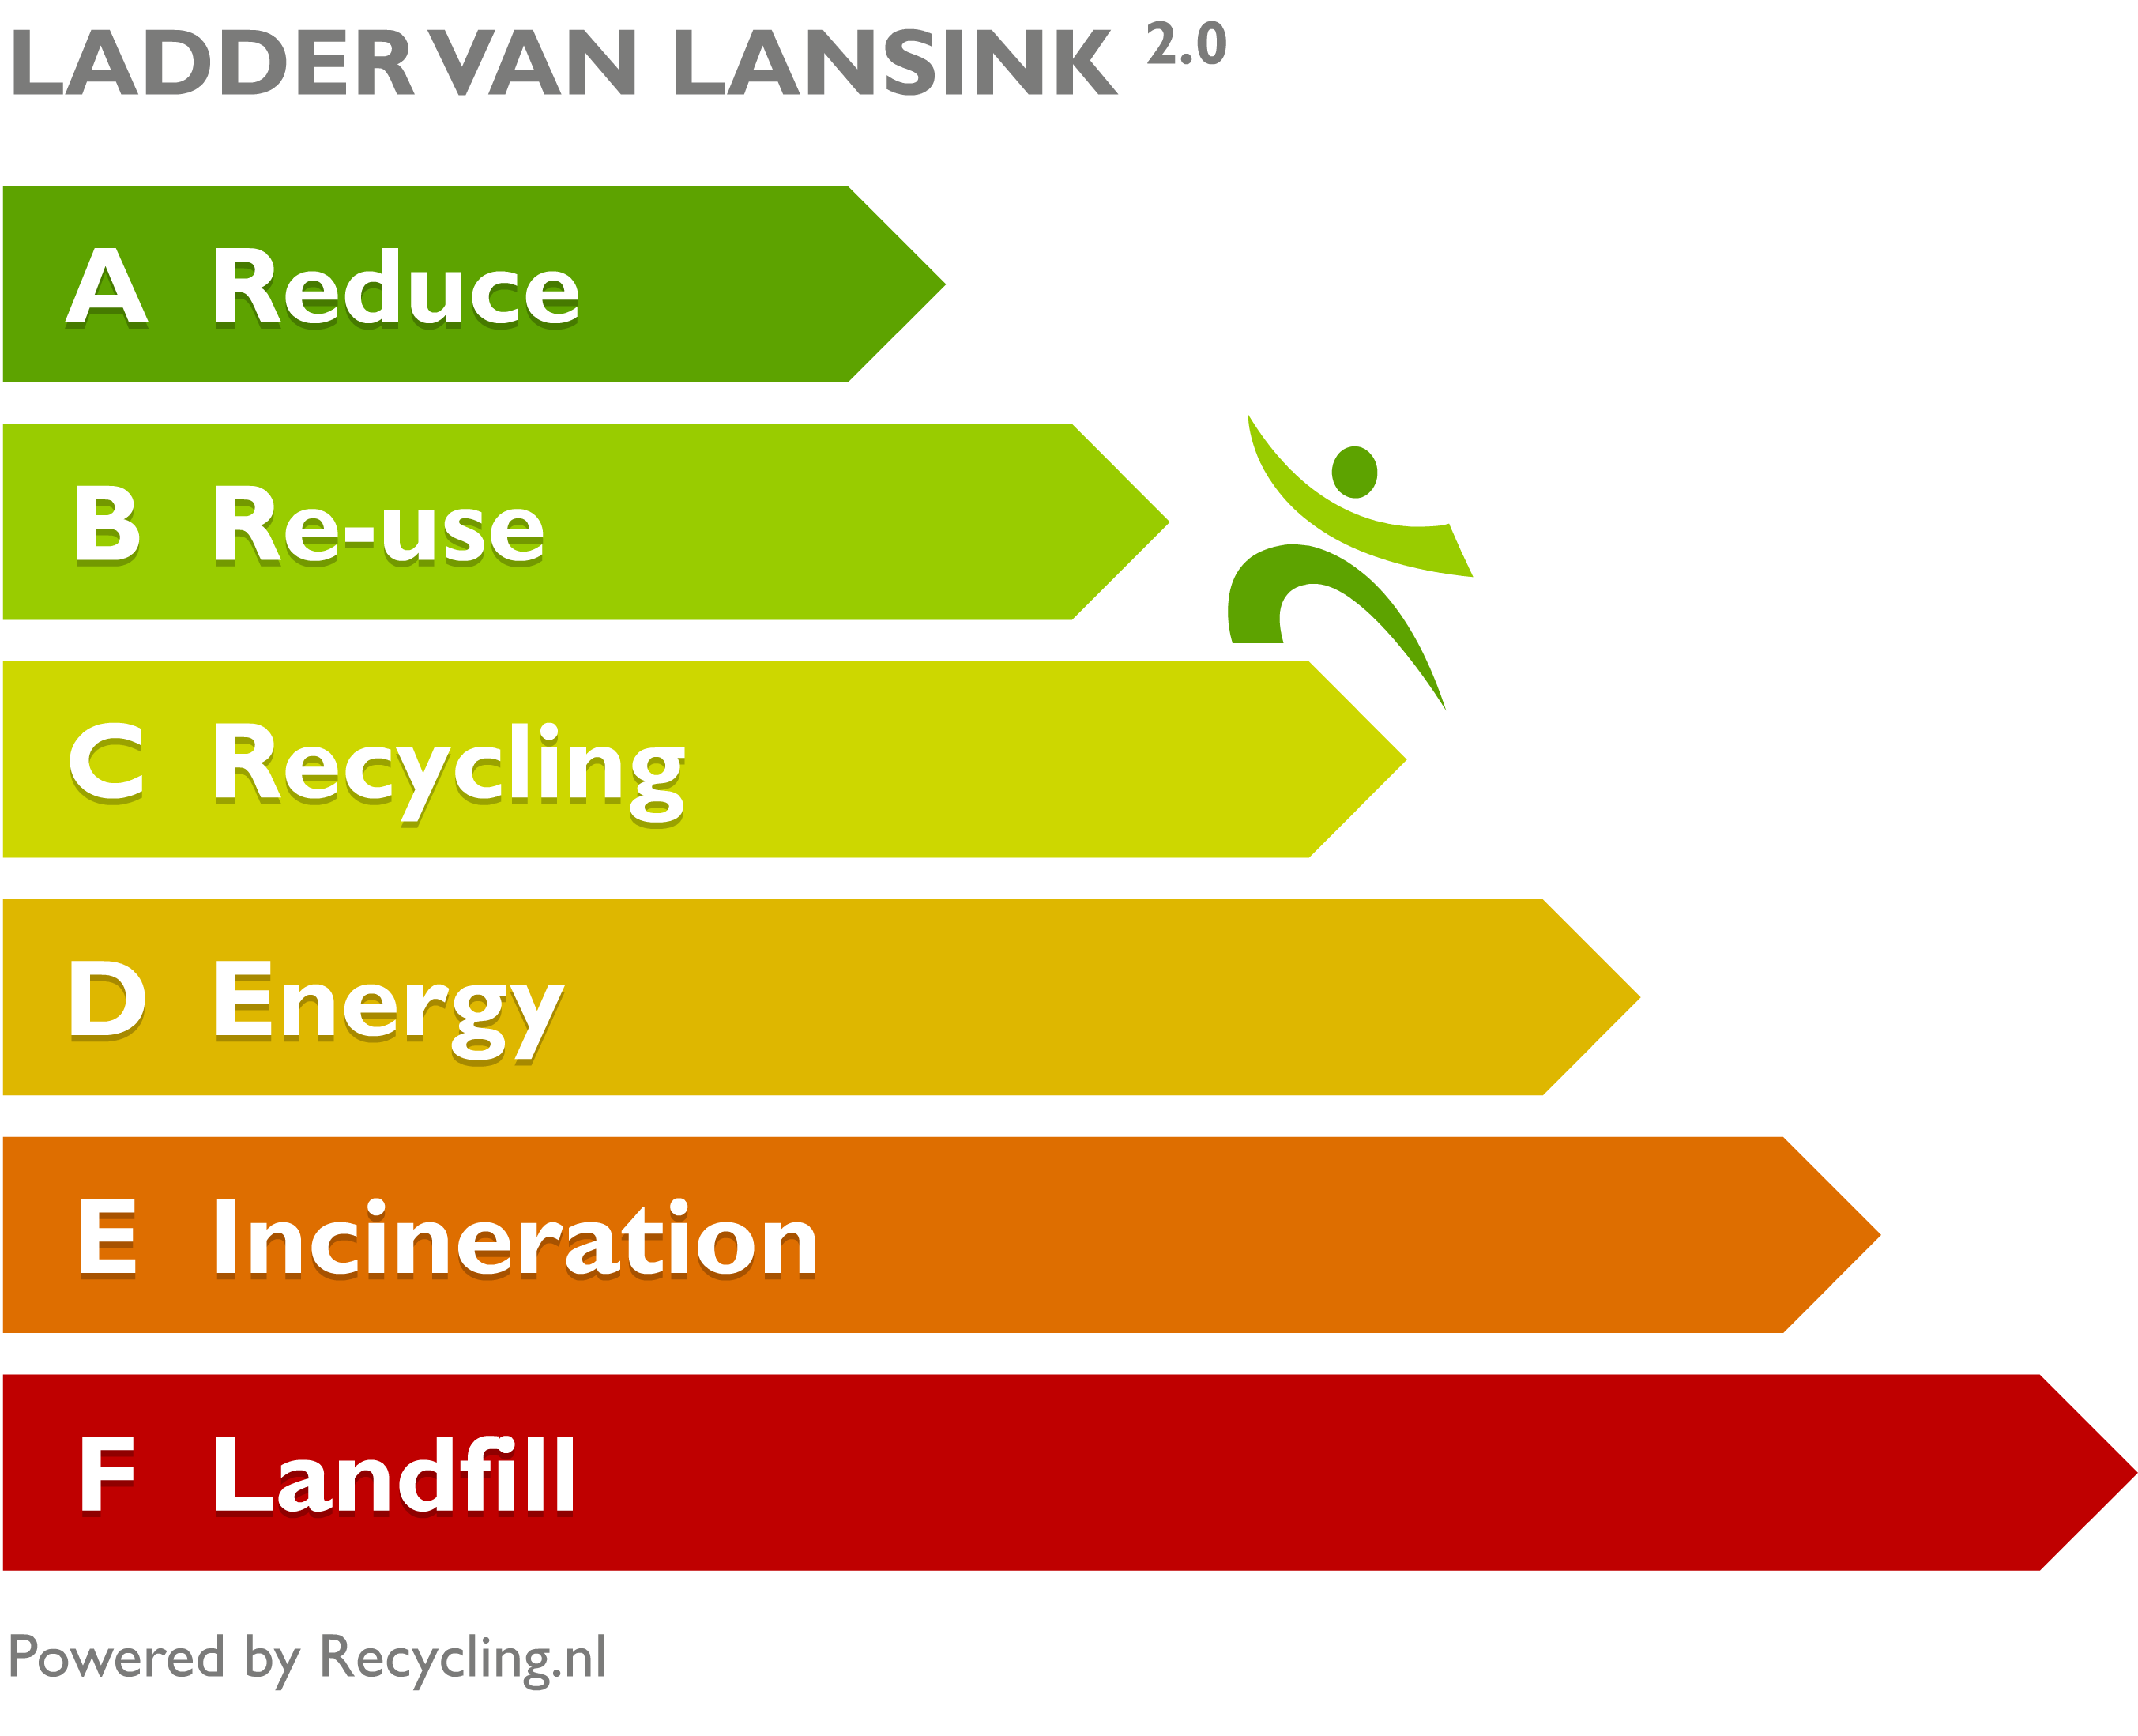 Ladder van lansink 20 english meer httprecycling ladder van lansink 20 english meer httprecycling ccuart Image collections